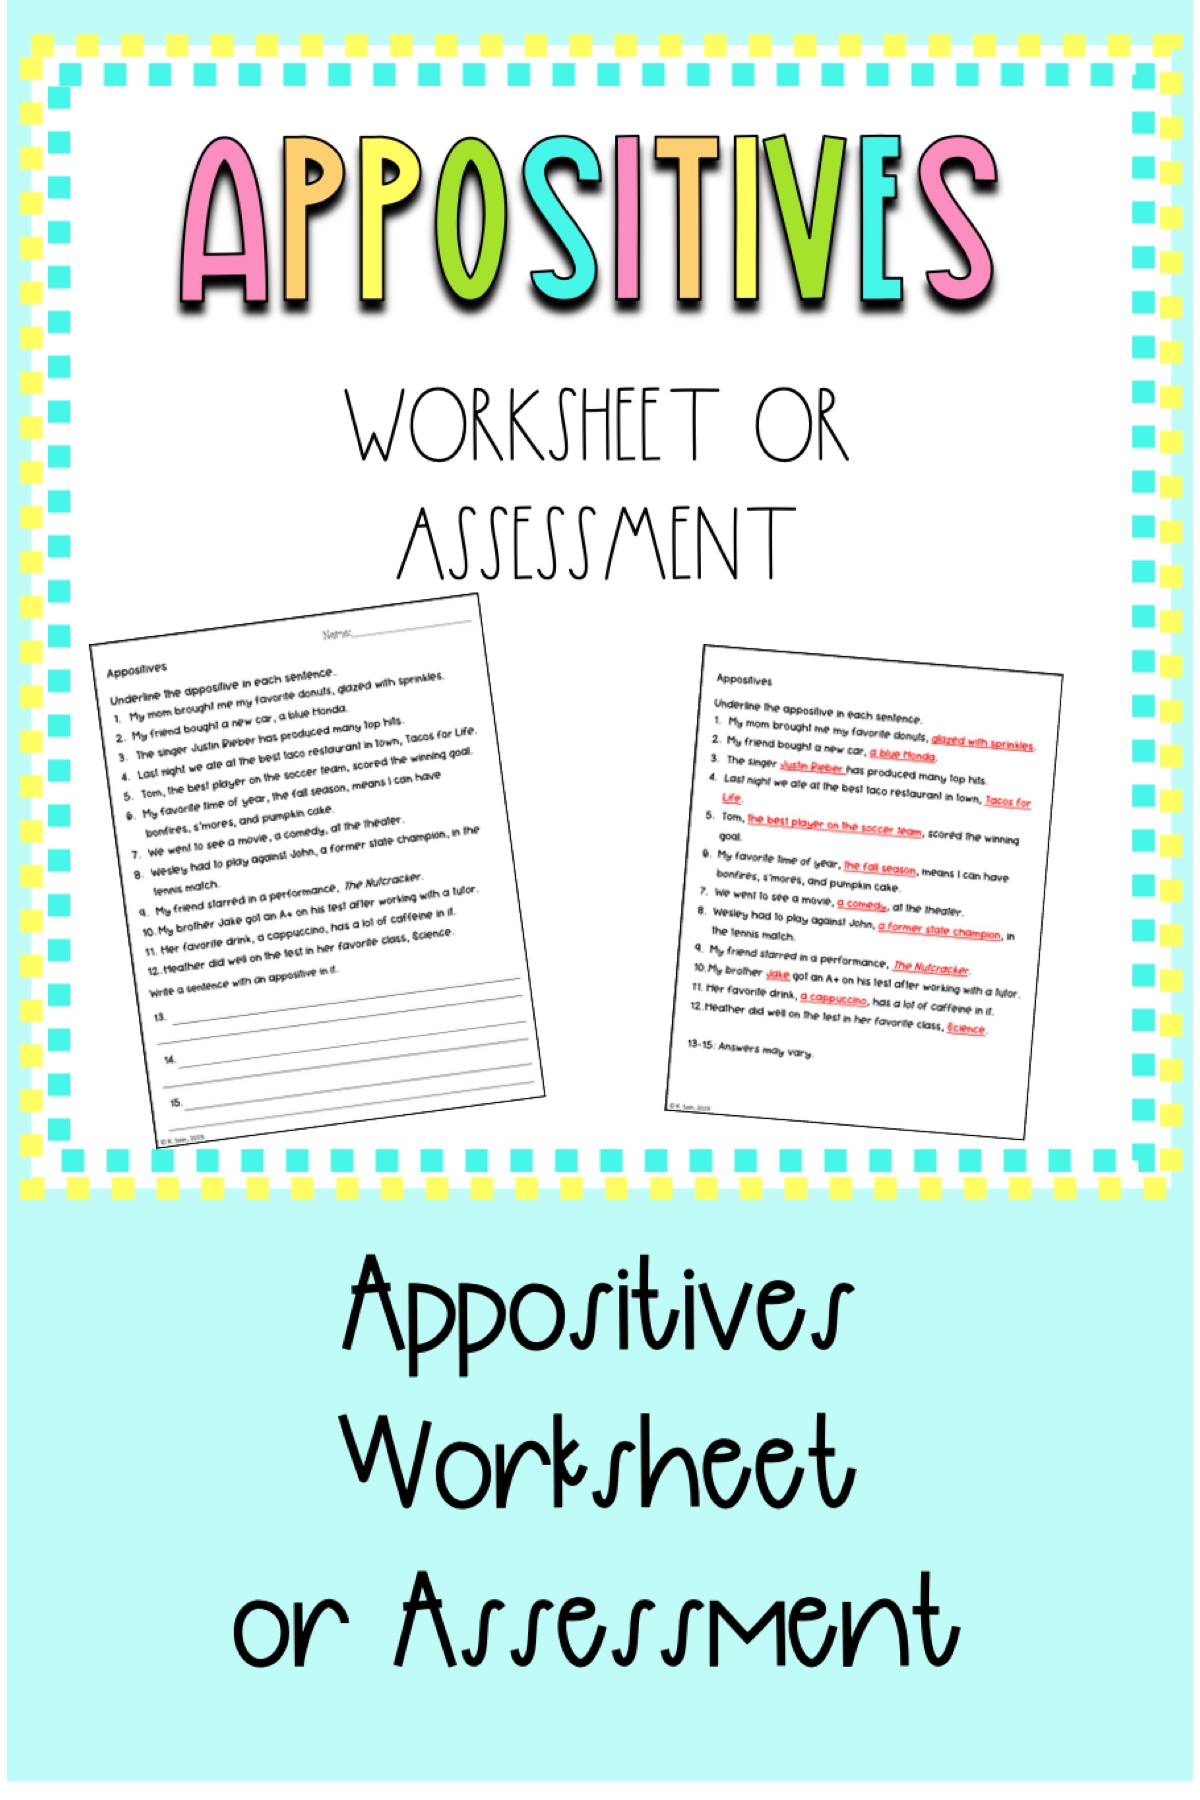 Appositives And Appositive Phrases Worksheet 6th 8th